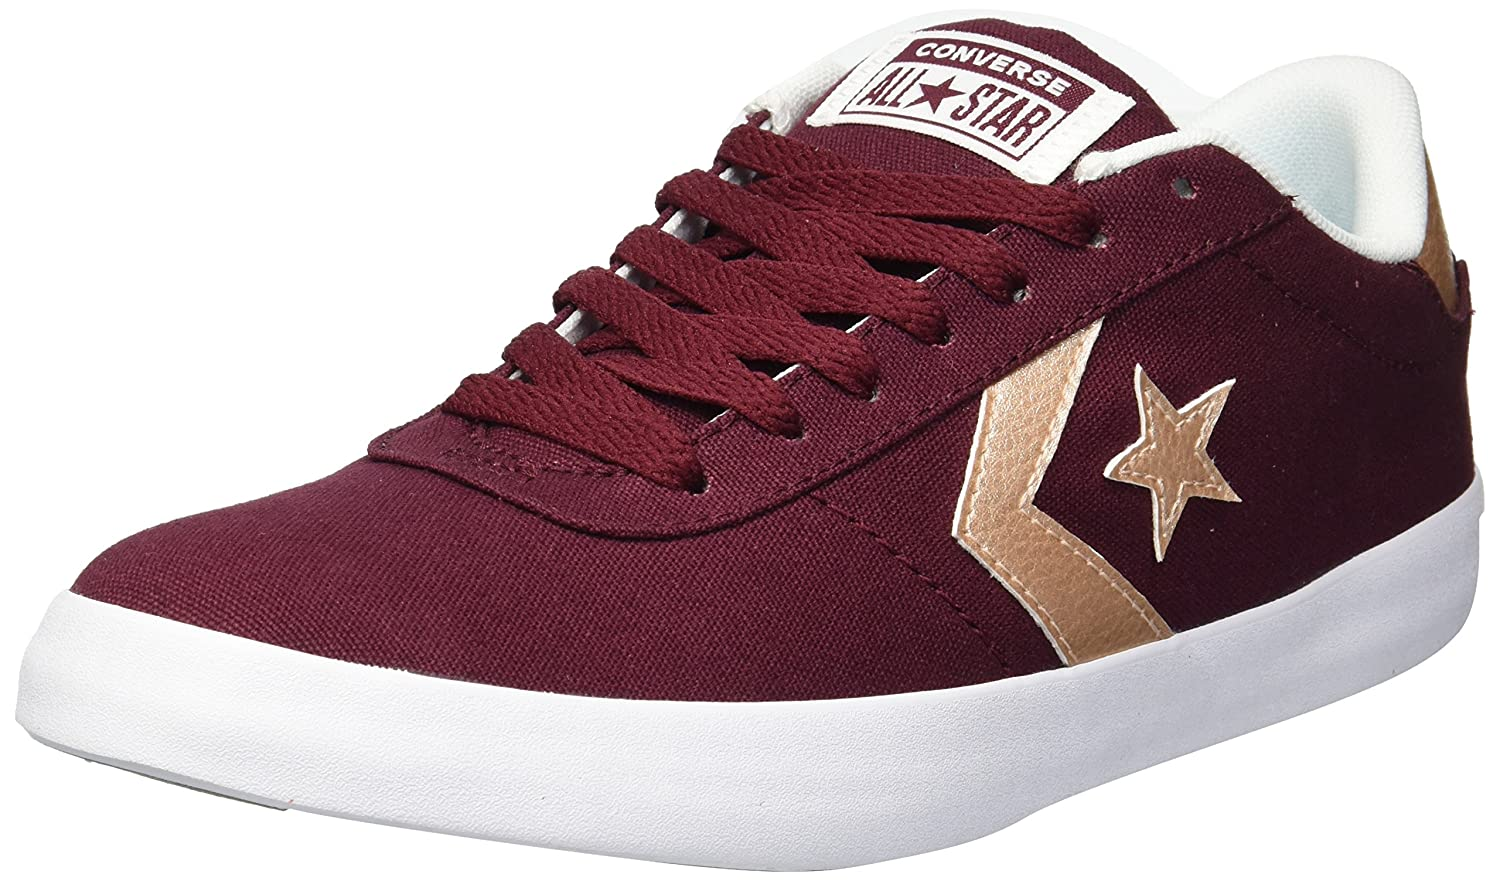 Converse Women's Point Star Low Top Sneaker B07CQCK51Y 10.5 M US|Dark Burgundy/White/Peach